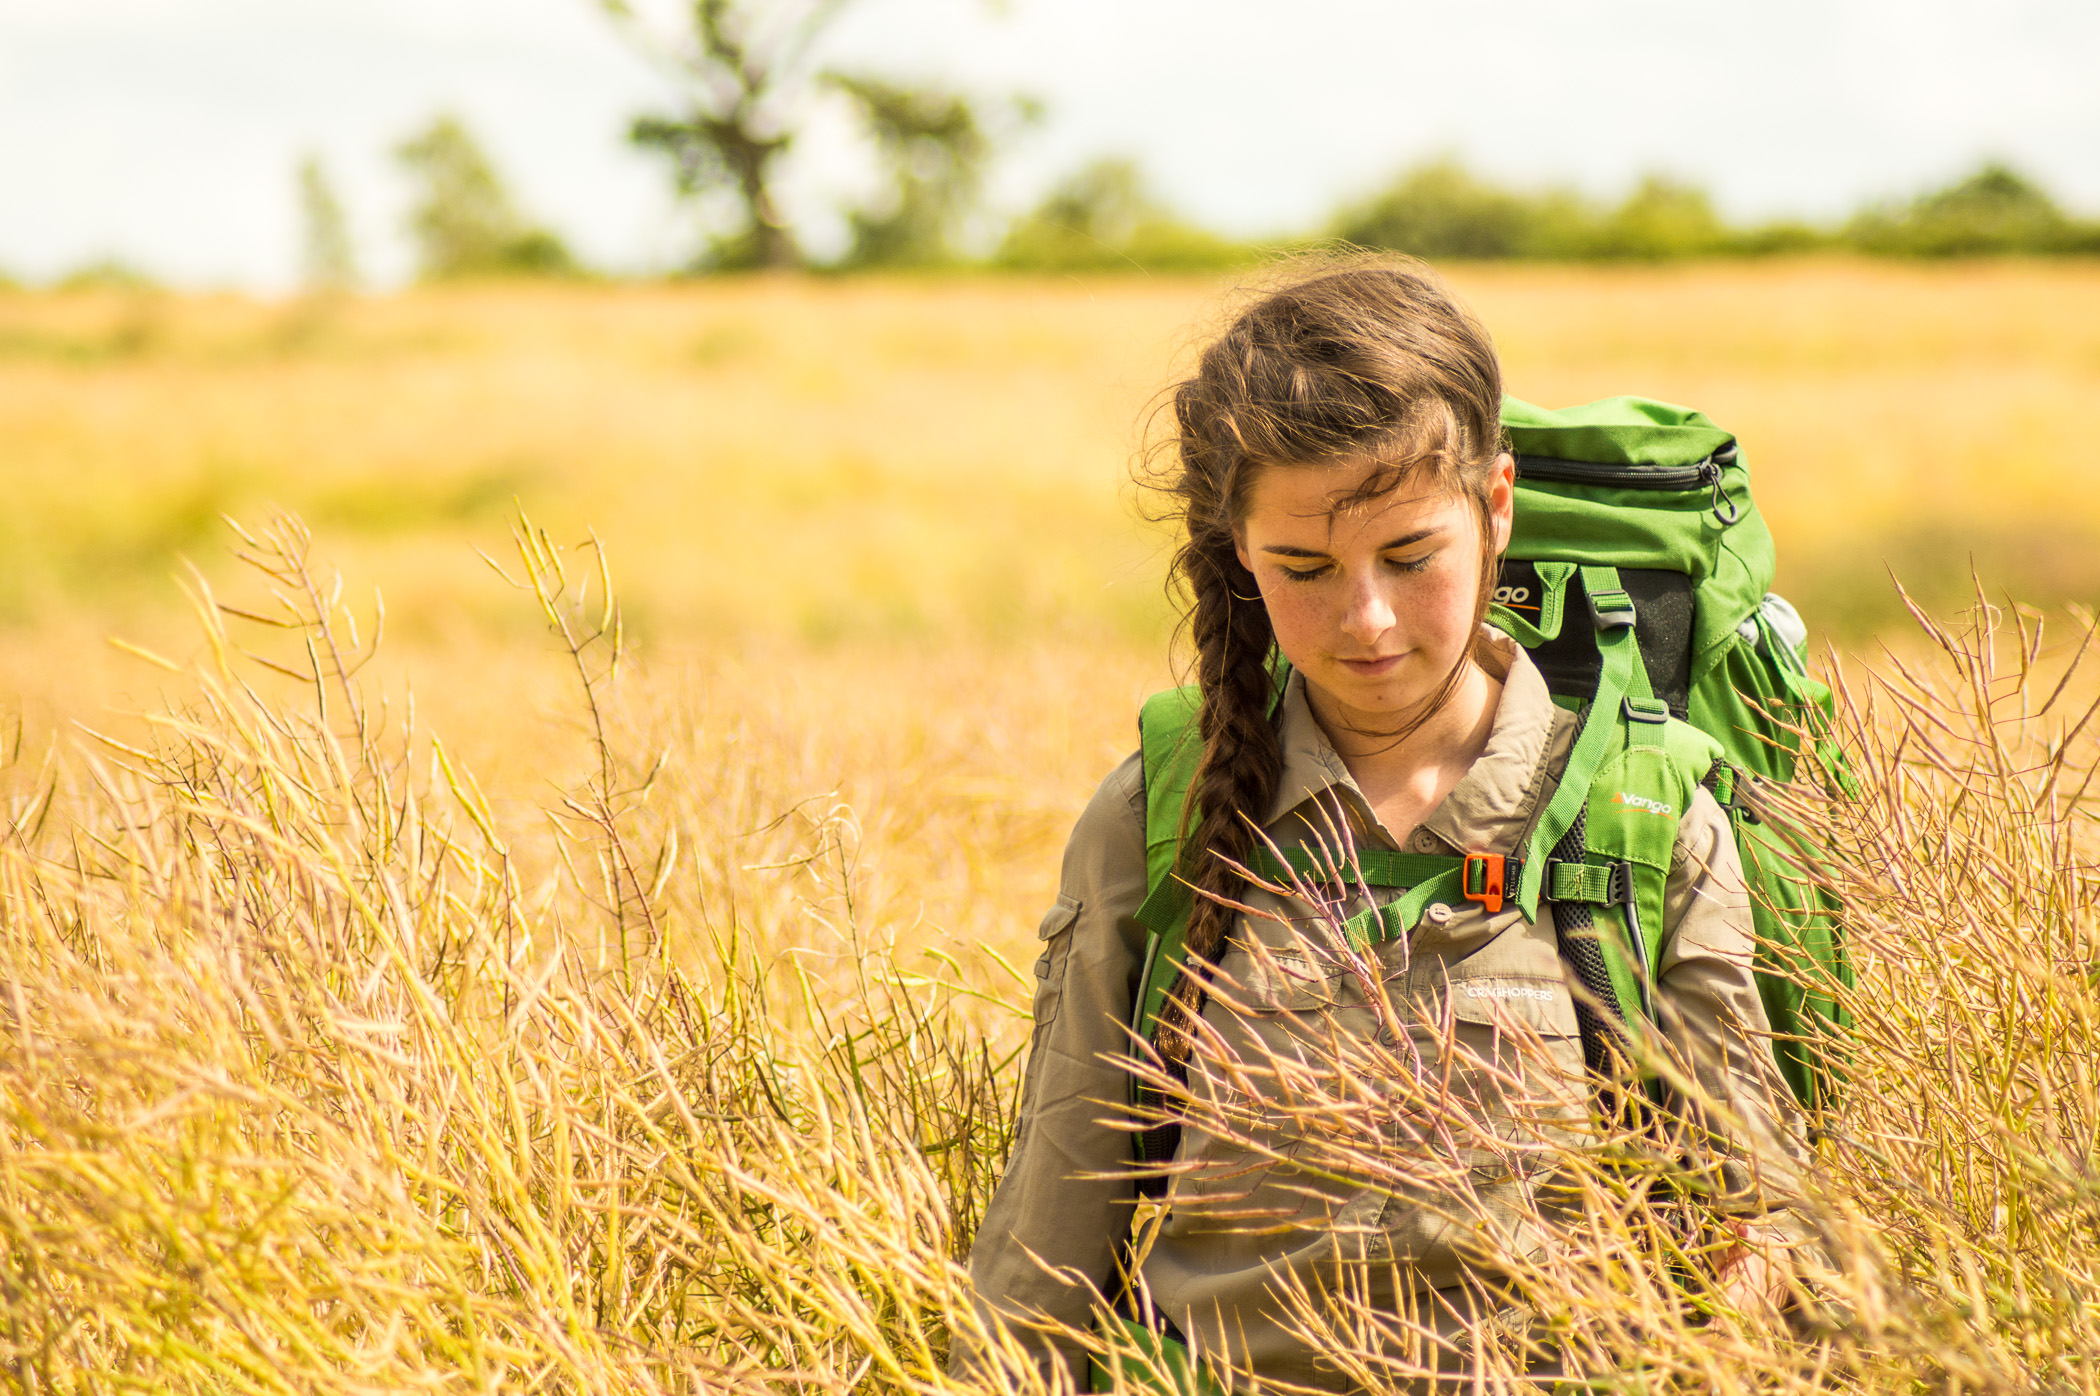 Craghoppers Ambassador Lucy share her favourite kit to take on a DofE expedition